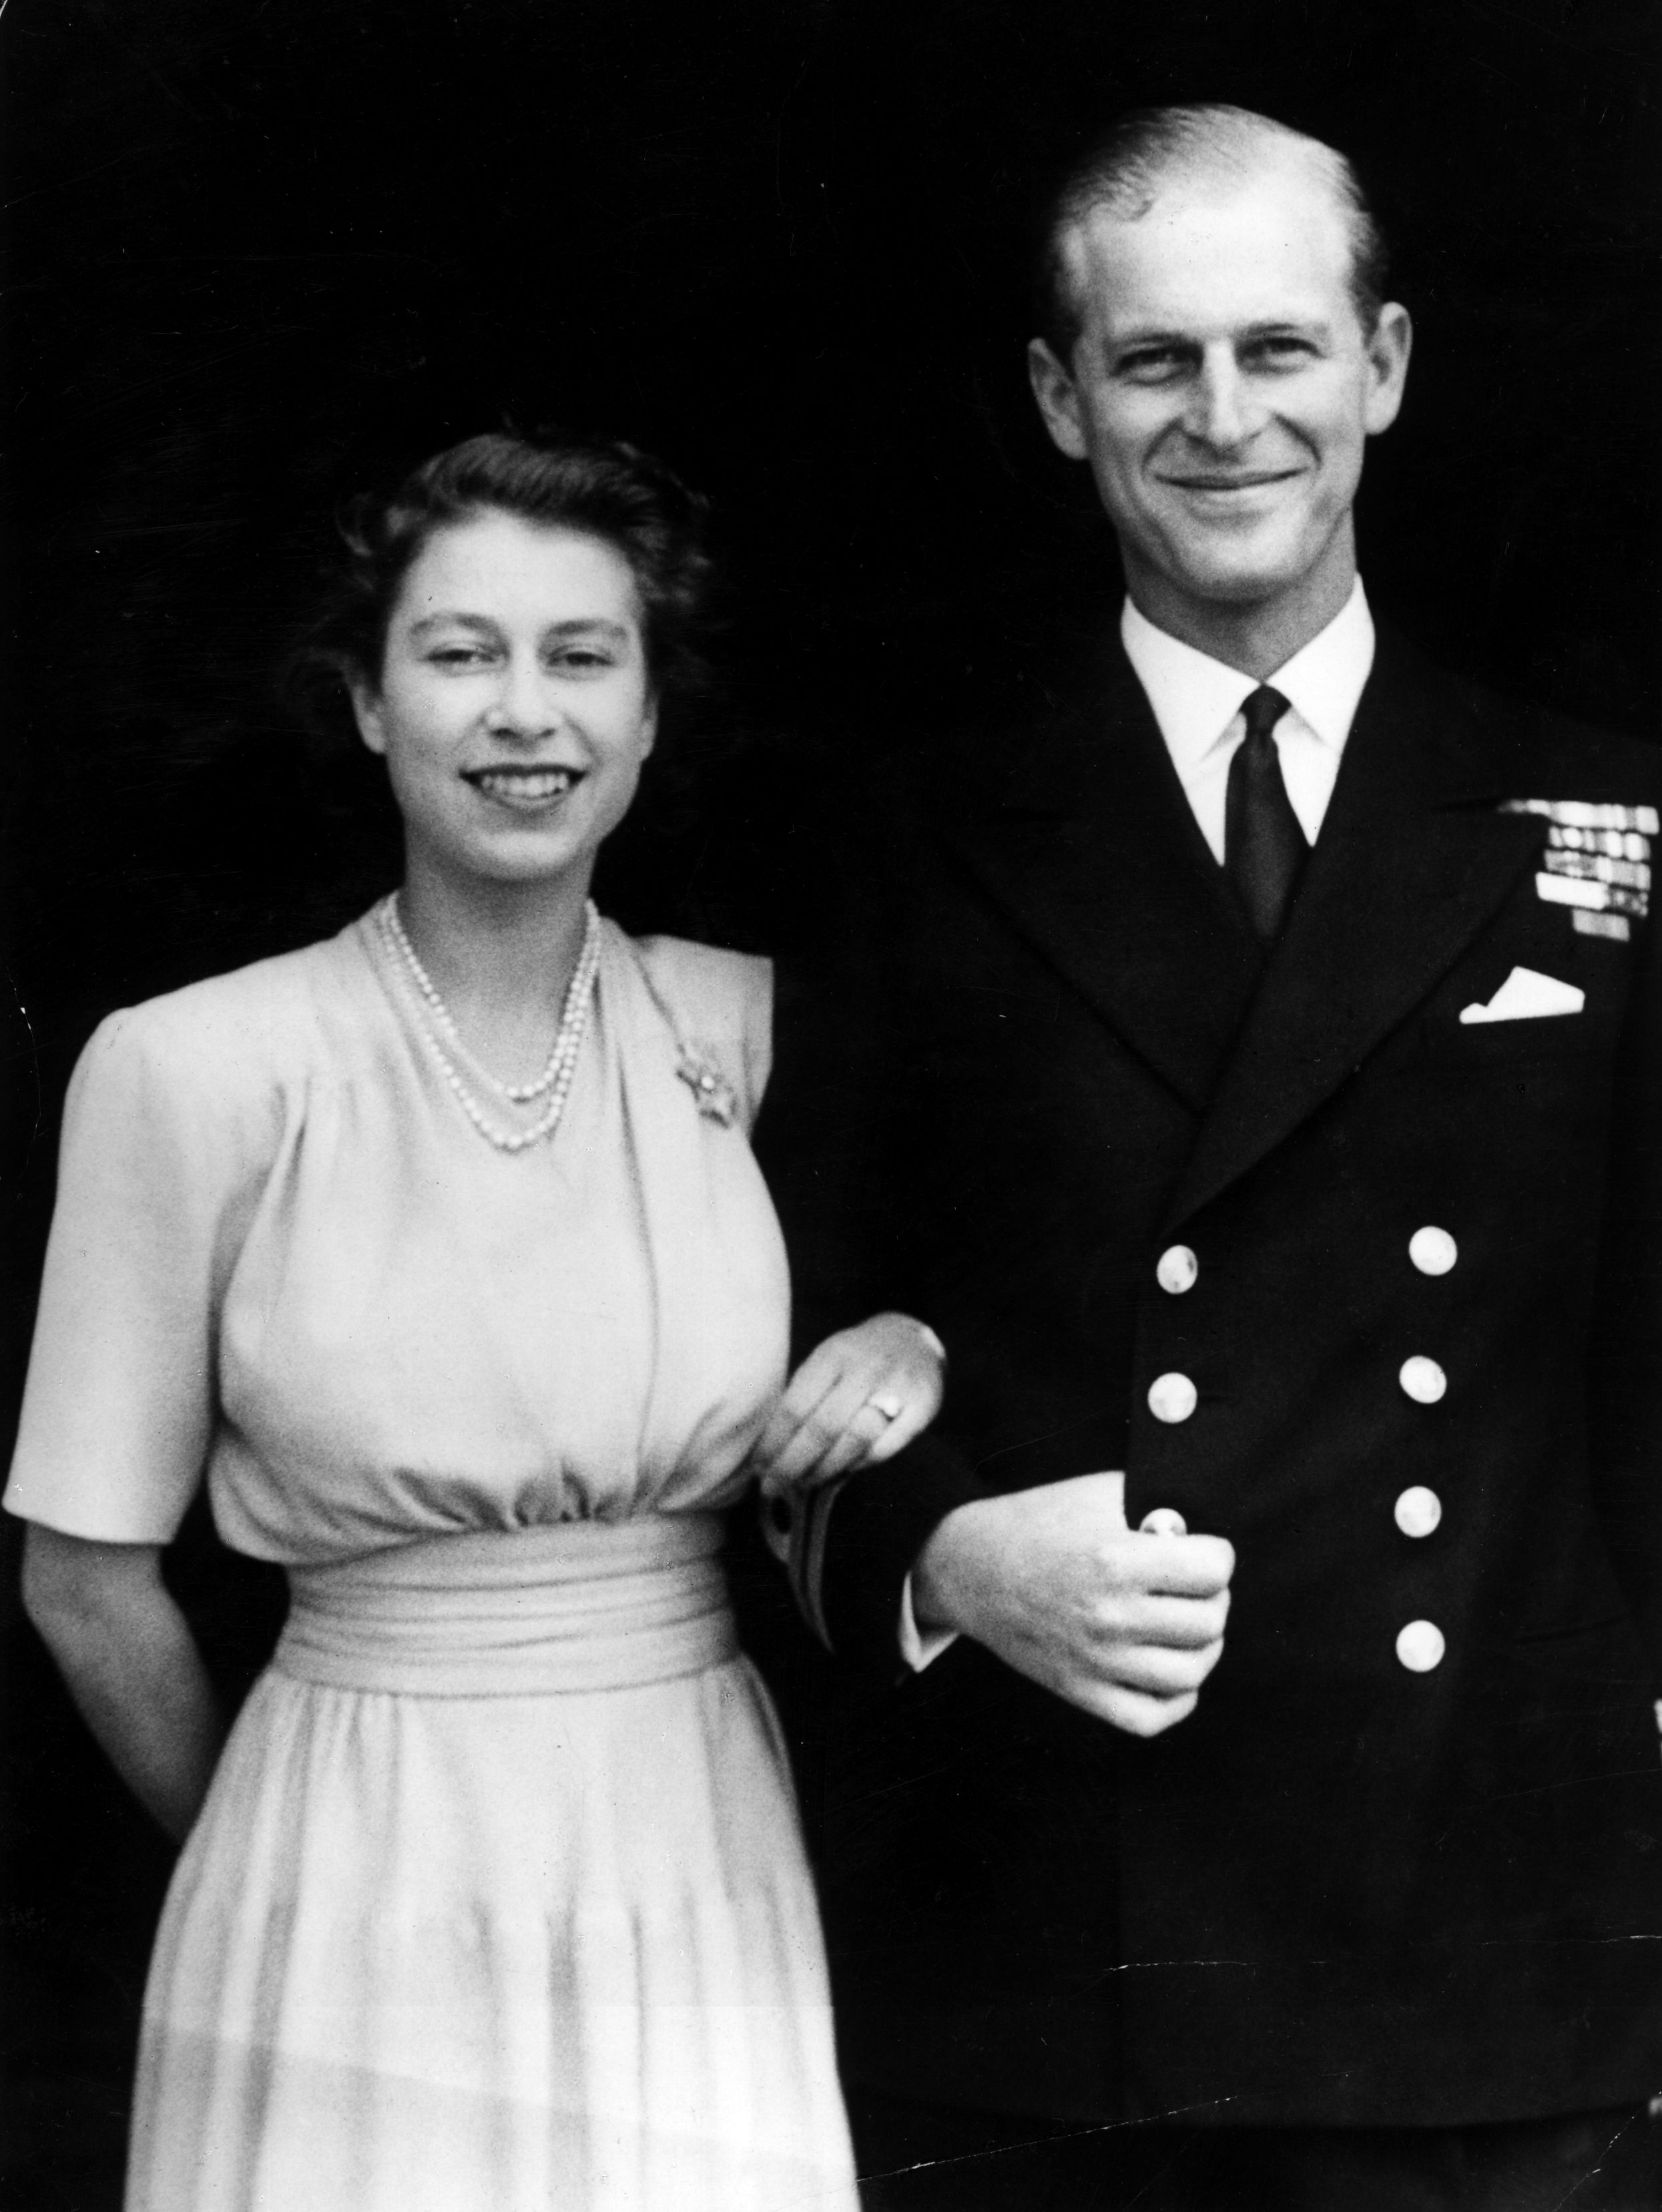 10th July 1947: The first official picture after the announcement of the engagement of Princess Elizabeth and Lieutenant Philip Mountbatten, the former Prince Philip of Greece, at Buckingham Palace. The princess is wearing her enagement ring for the first time.Кредит:Hulton Archive/Getty Images